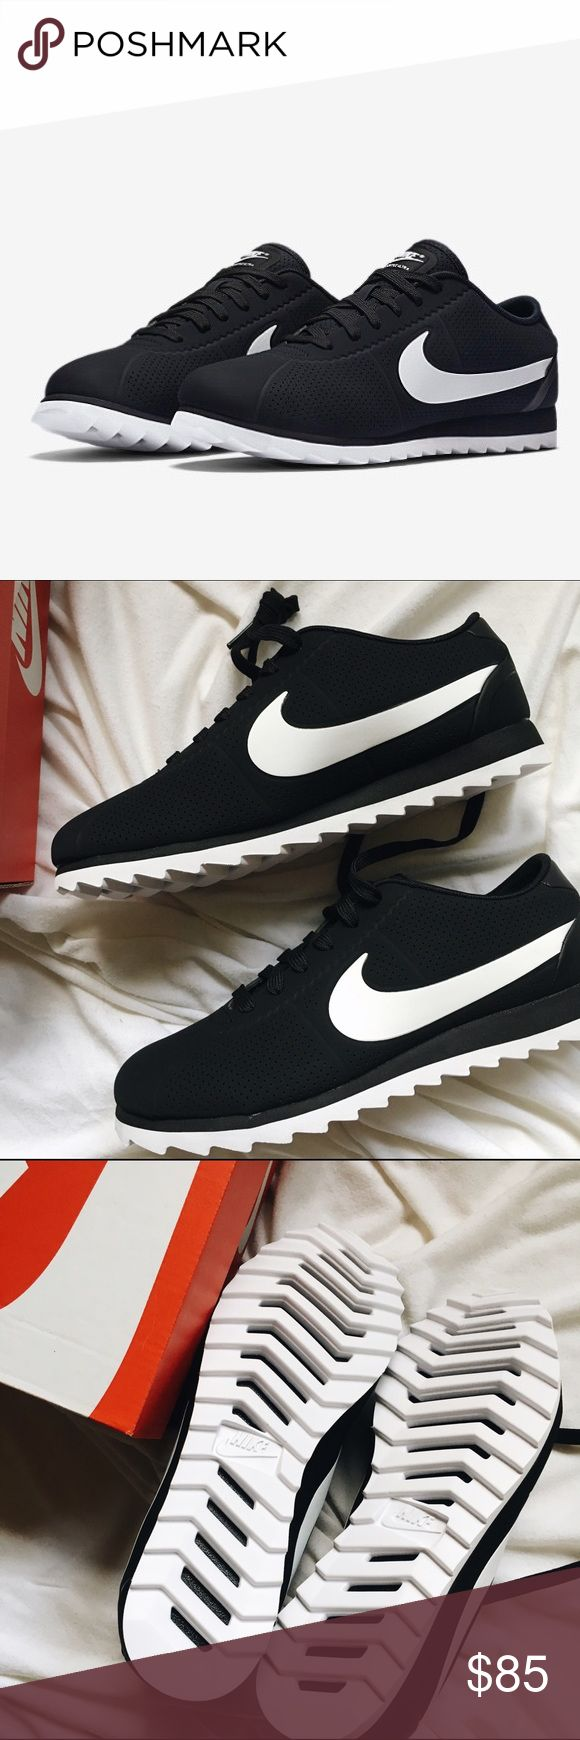 NWT Nike Cortez Ultra Moire | 5.5 | Black ✨ NEW WITH BOX ✨  Size women's 5.5  Cute, classic Nike Cortez sneakers in black and white.  Comment with any questions! I'm open to reasonable offers. Nike Shoes Athletic Shoes